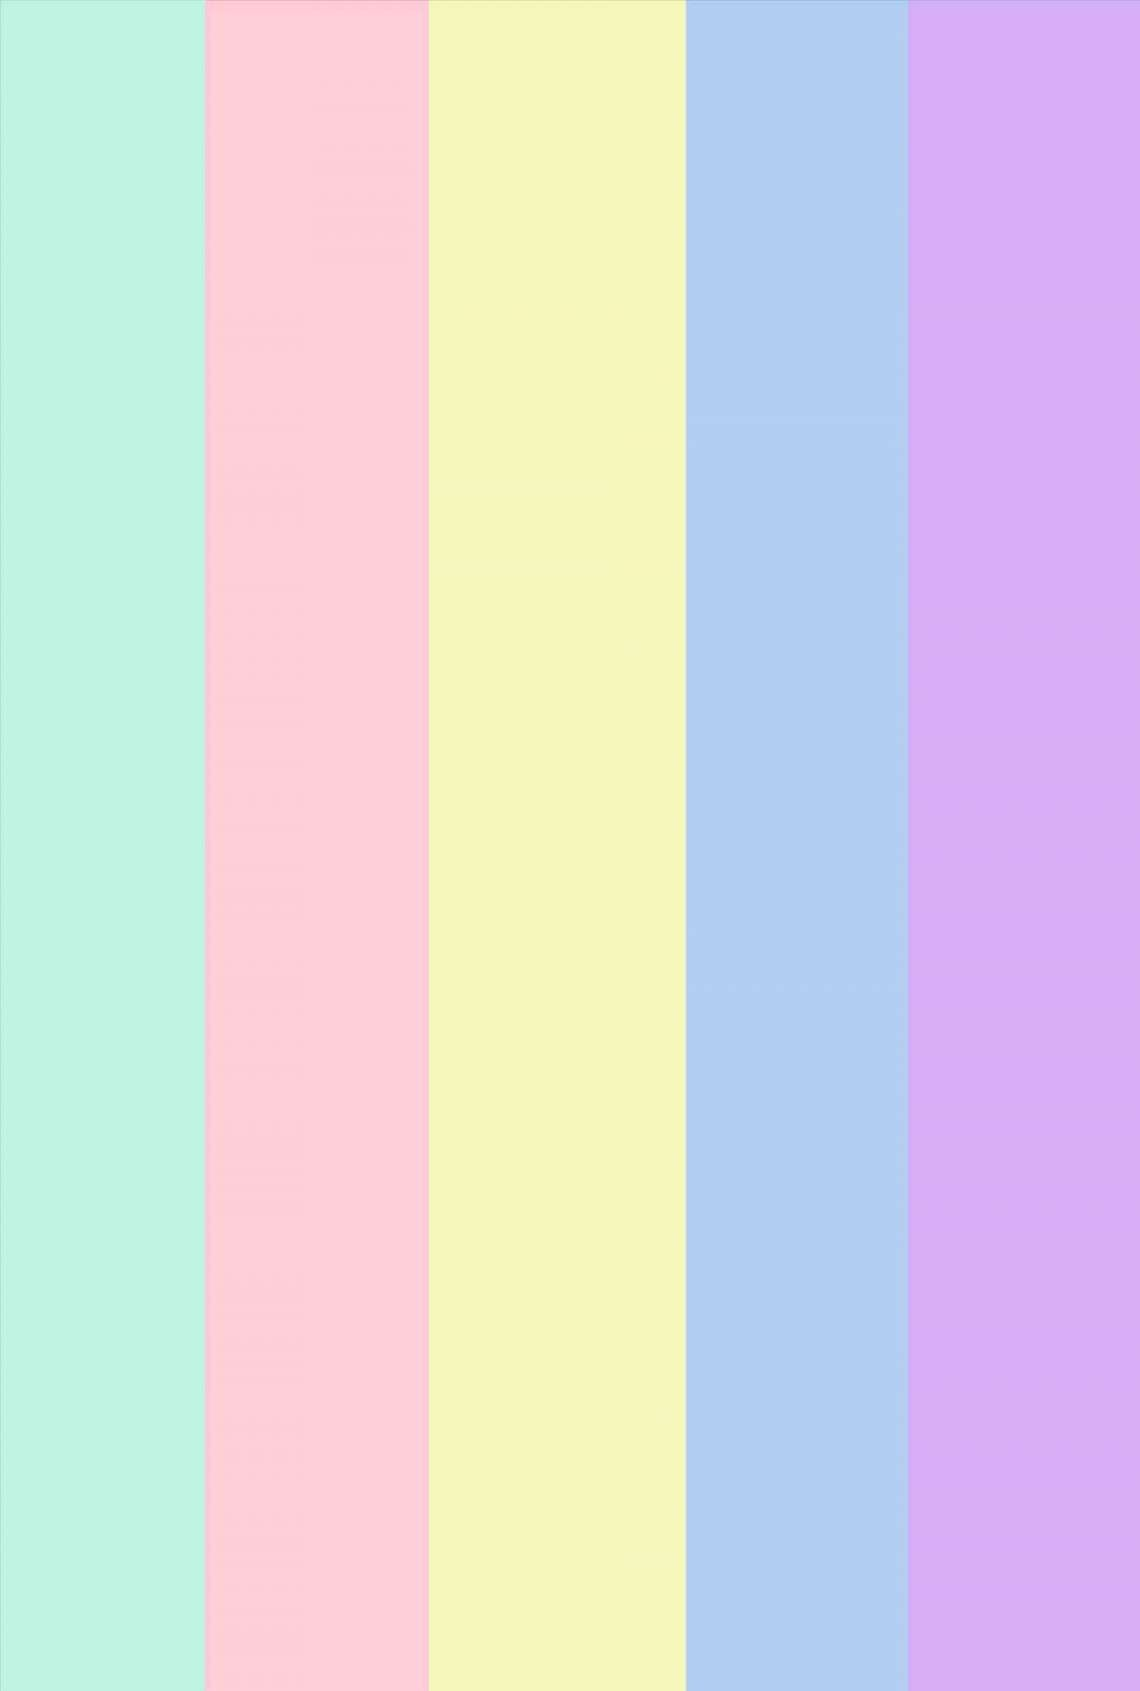 16+ Pastel Color Sheme With Purple, Blue, Pink, And Magenta,Fashion, Furniture, Other Color, Room,